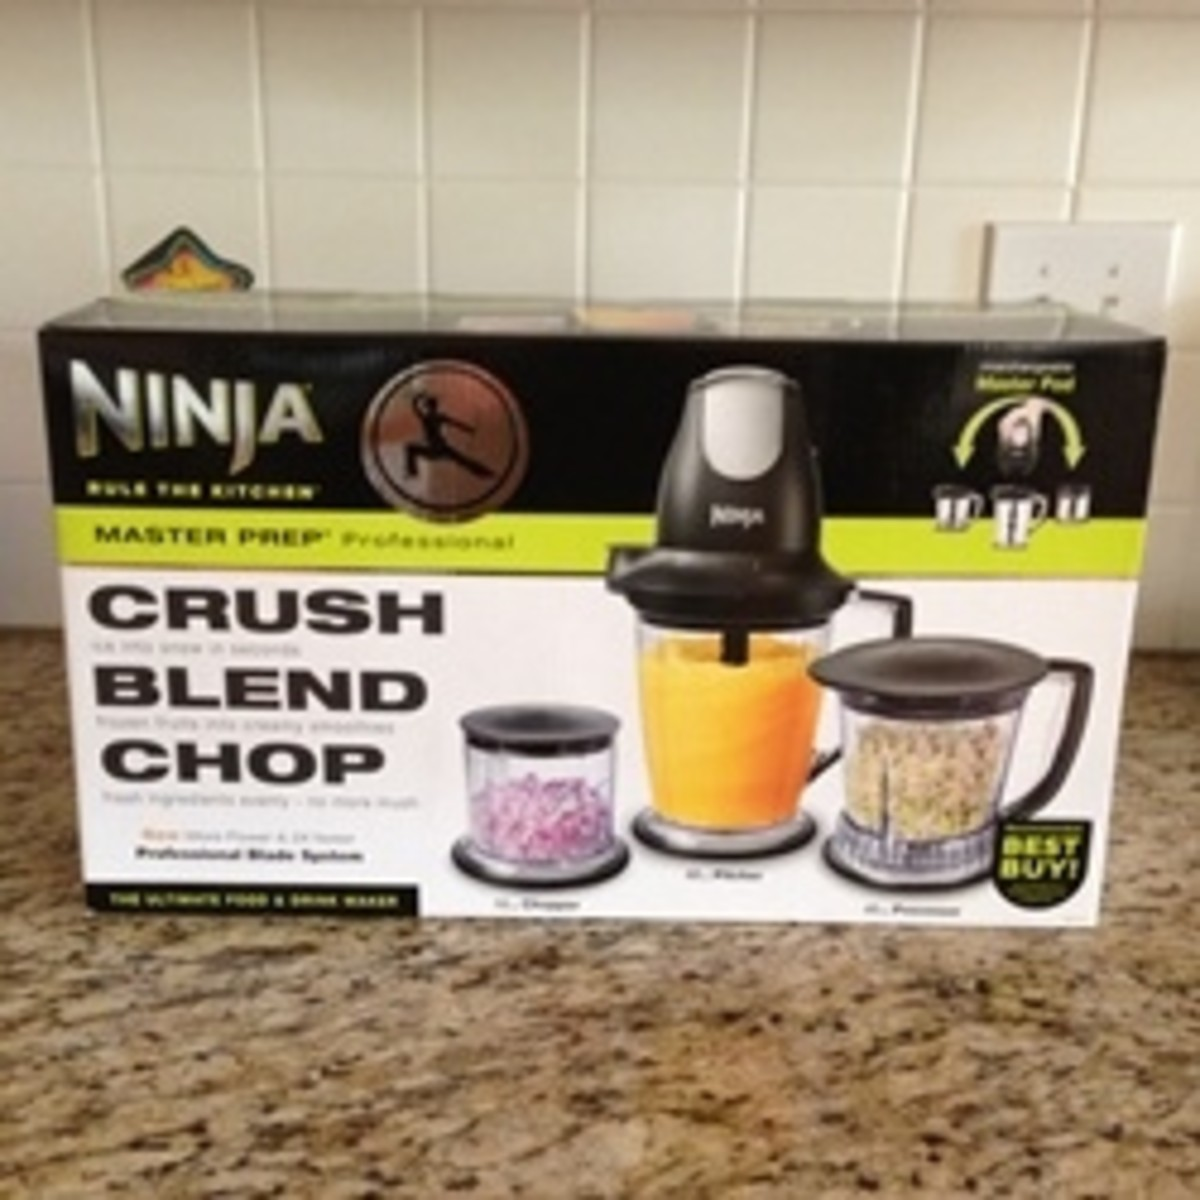 Ninja Master Prep Professional Blender & Food Processor